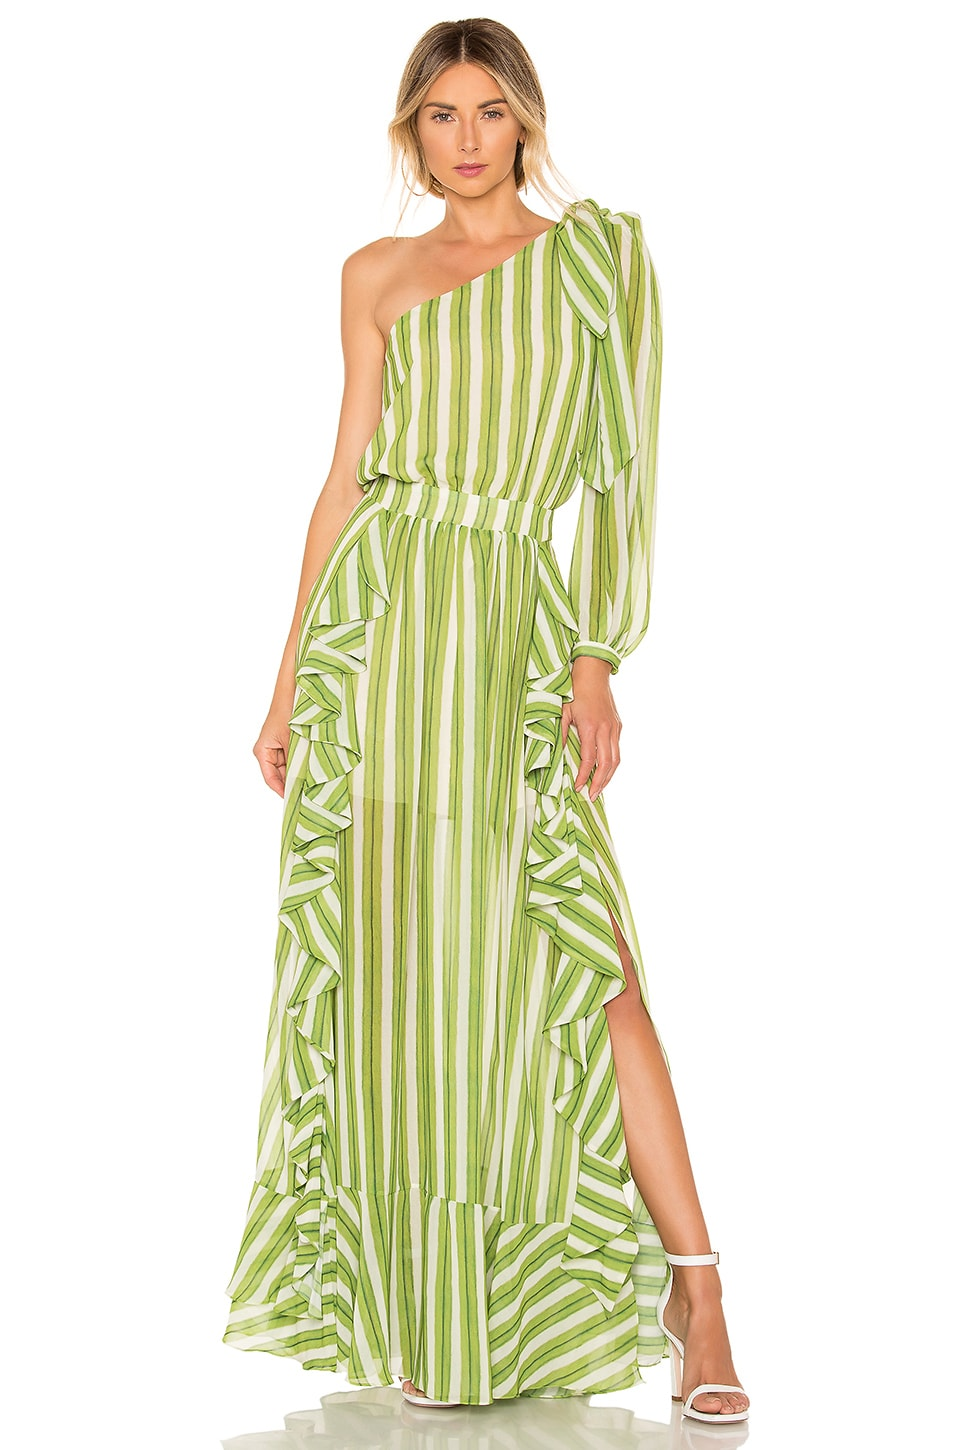 PatBo Striped One Shoulder Maxi Dress in Green & White